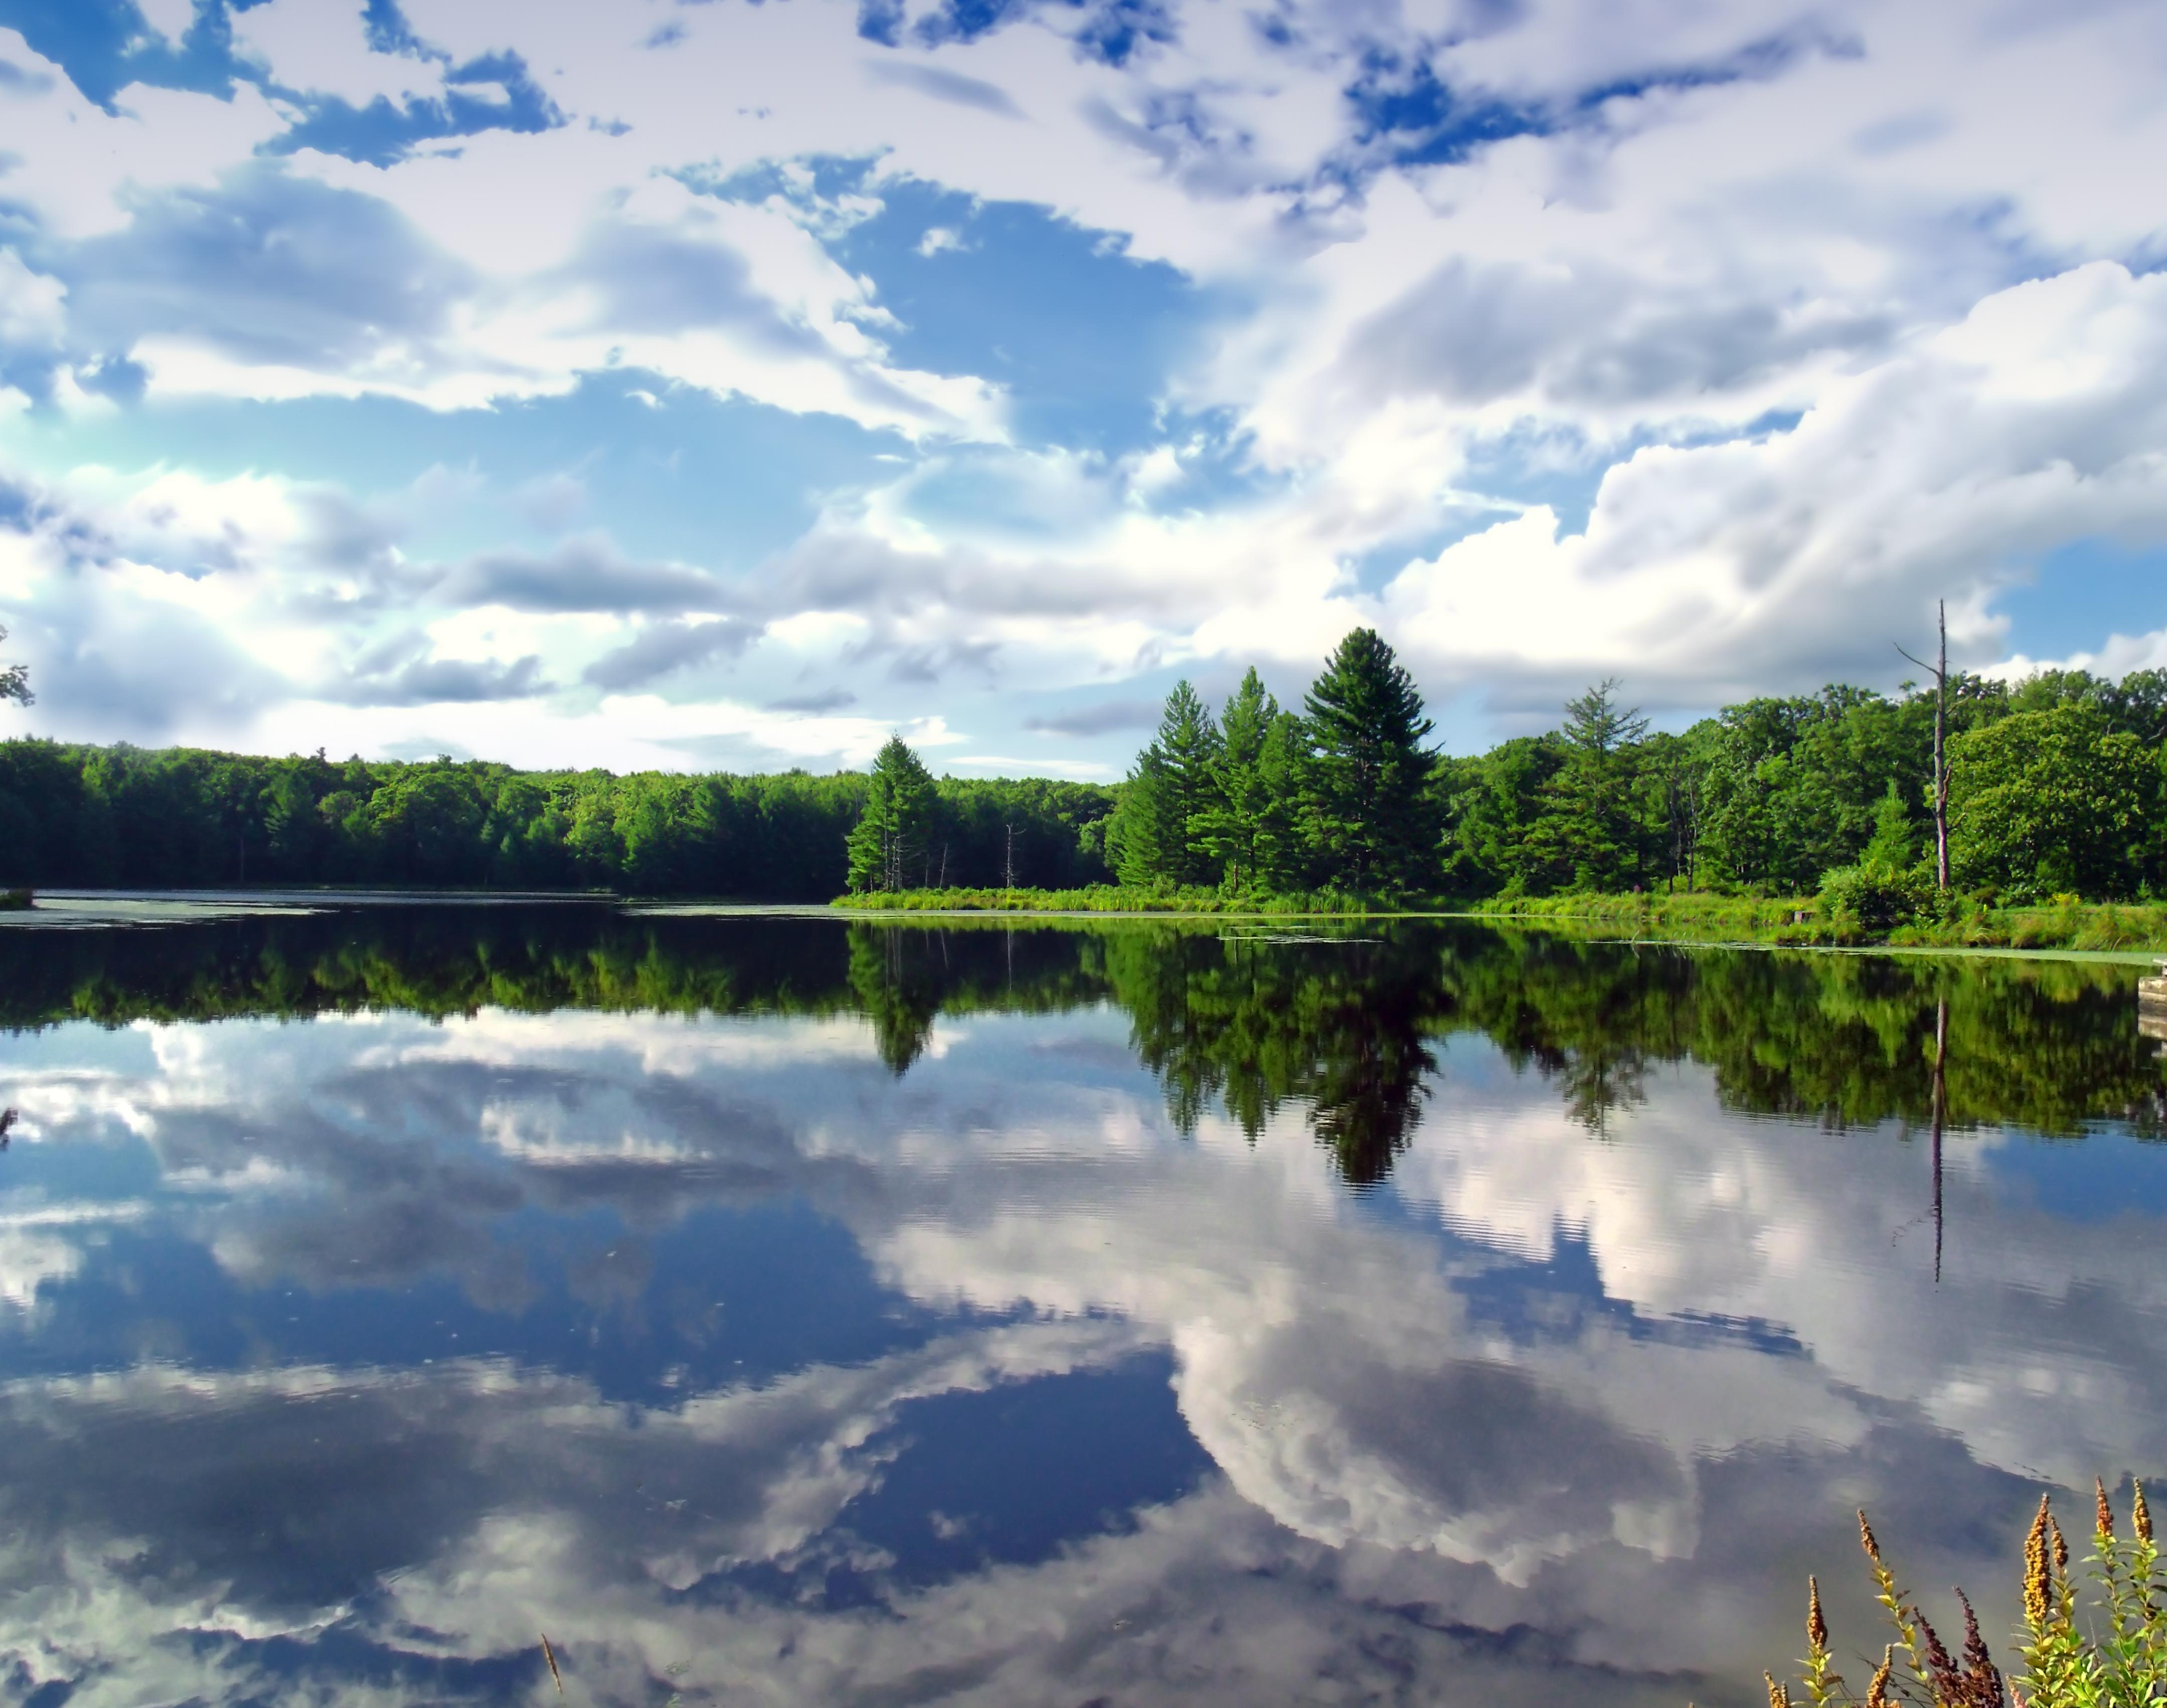 Hd Wallpaper Co Free Picture Water Landscape Lake Reflection Tree